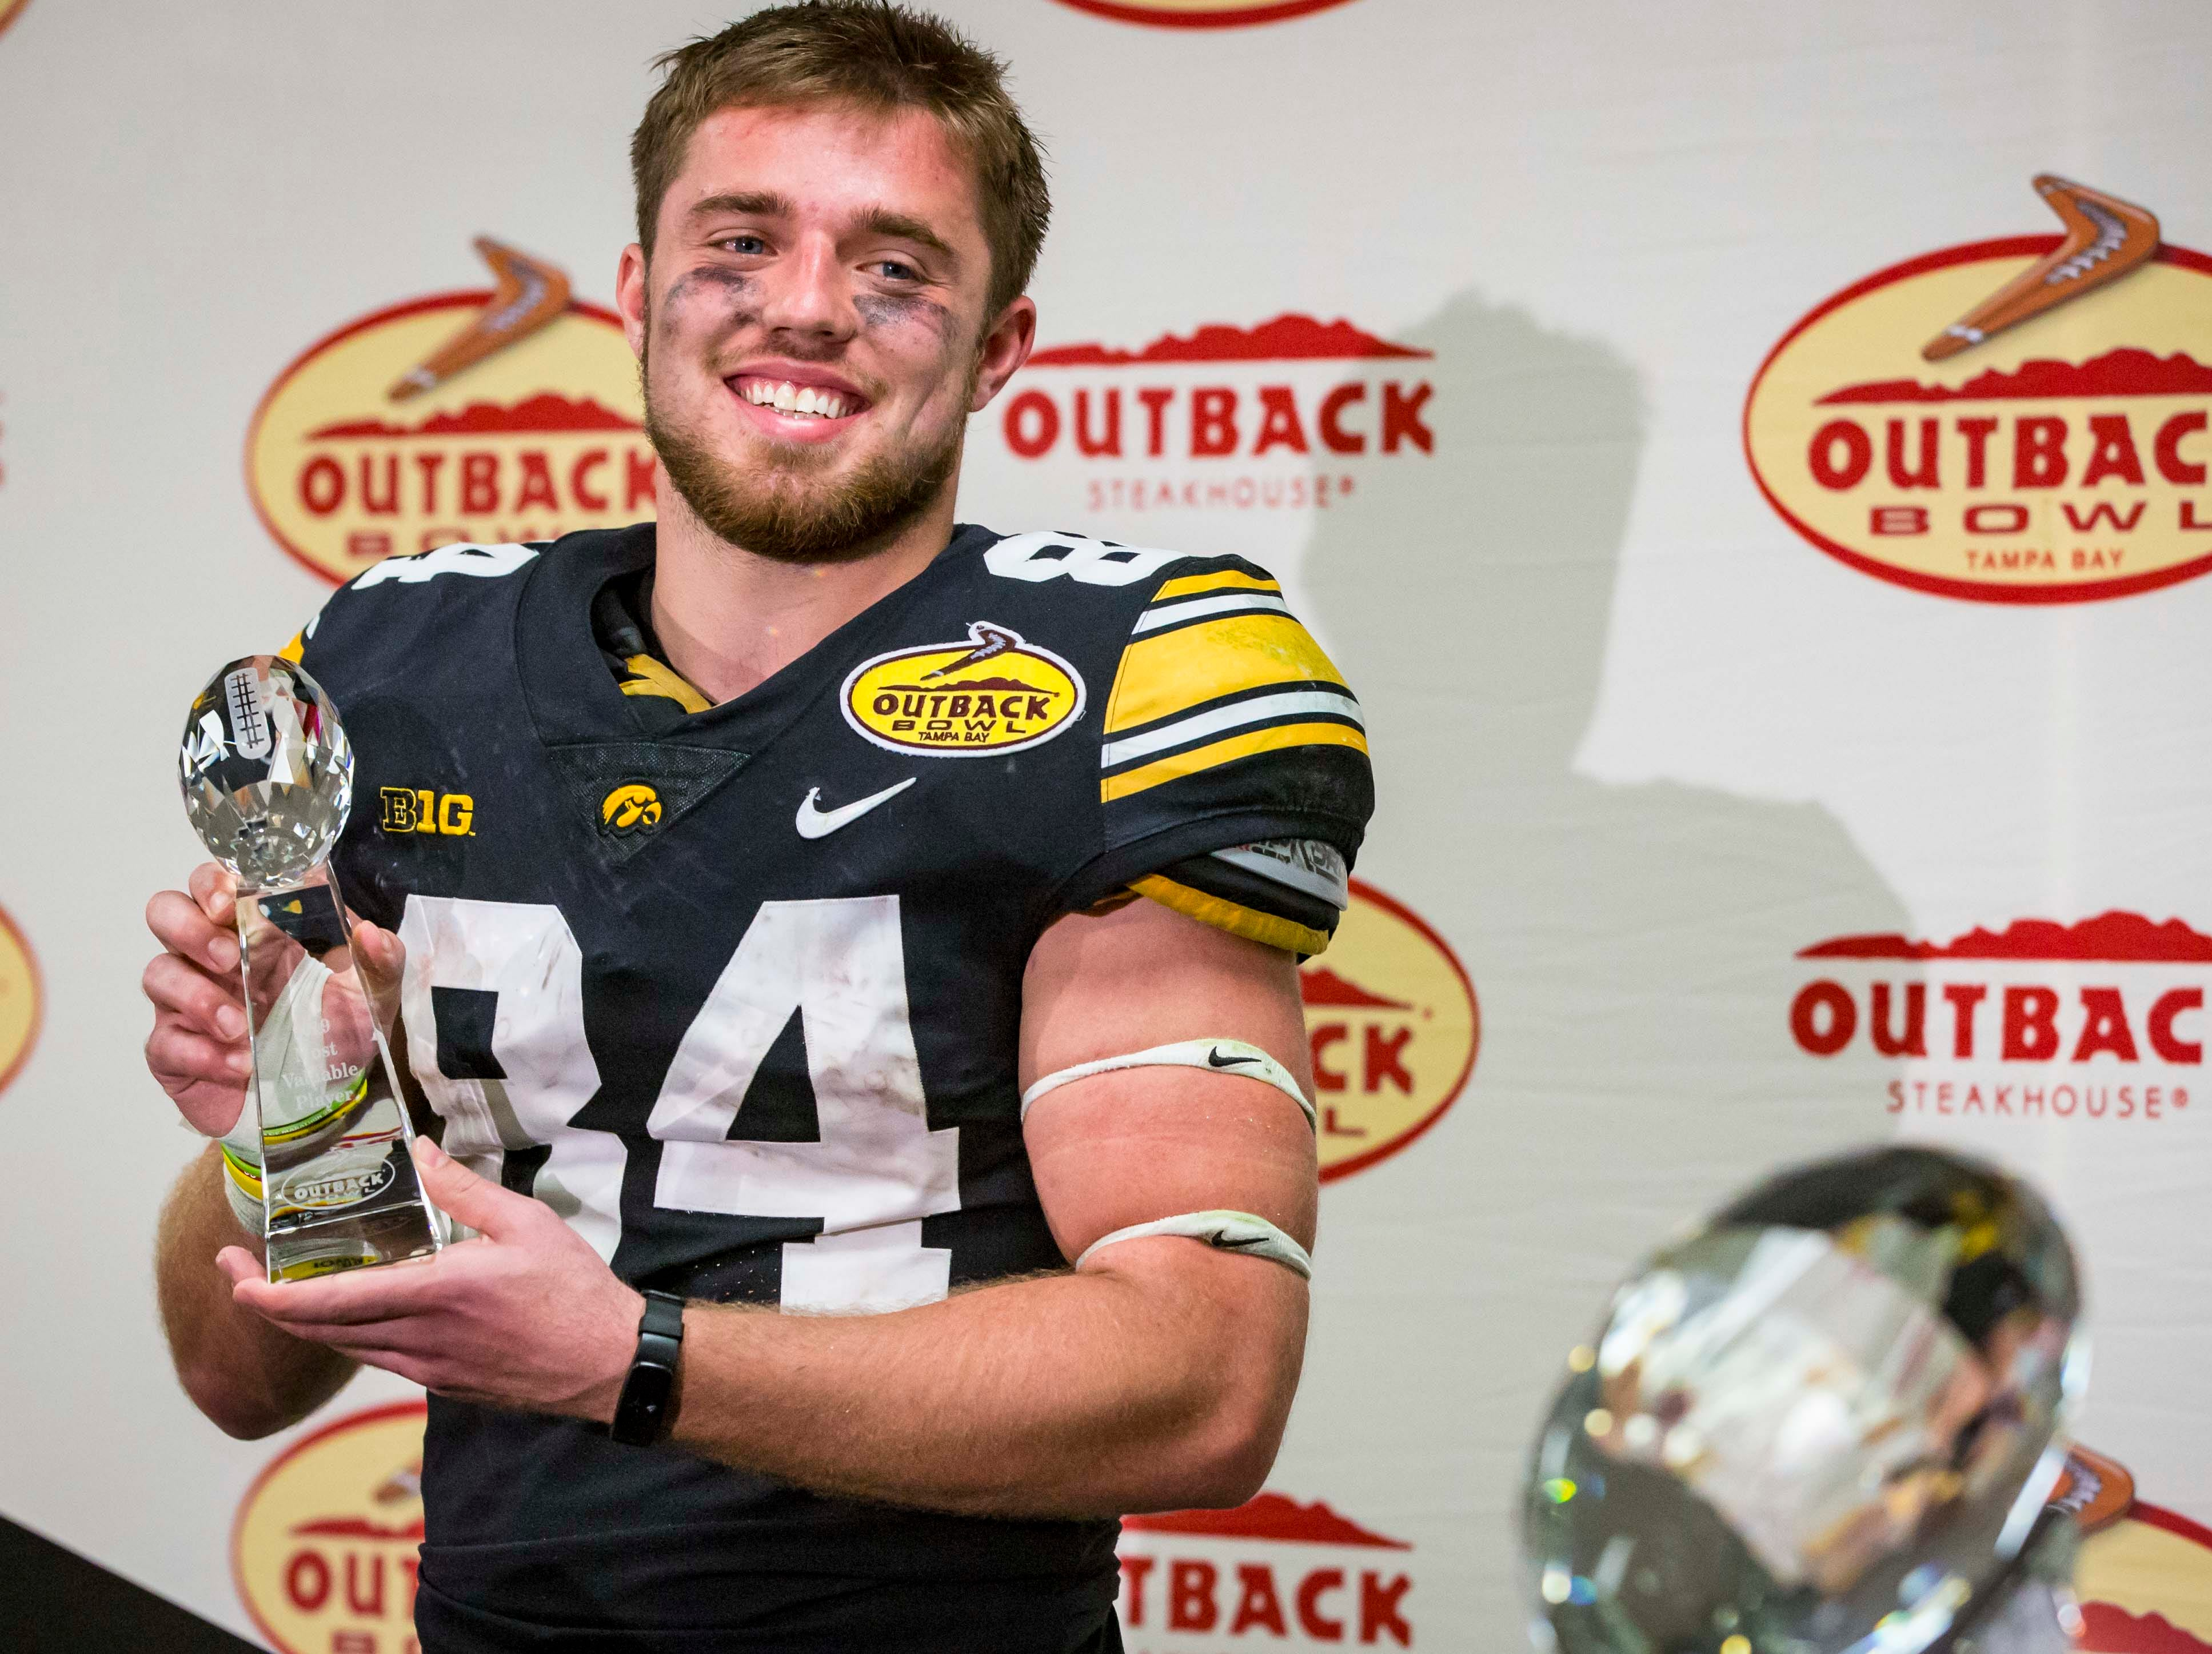 Outback Bowl most valuable player Iowa wide receiver Nick Easley after the Outback Bowl Tues., Jan. 1, 2019, at Raymond James Stadium in Tampa, Florida. Iowa defeated Mississippi State 27-22.